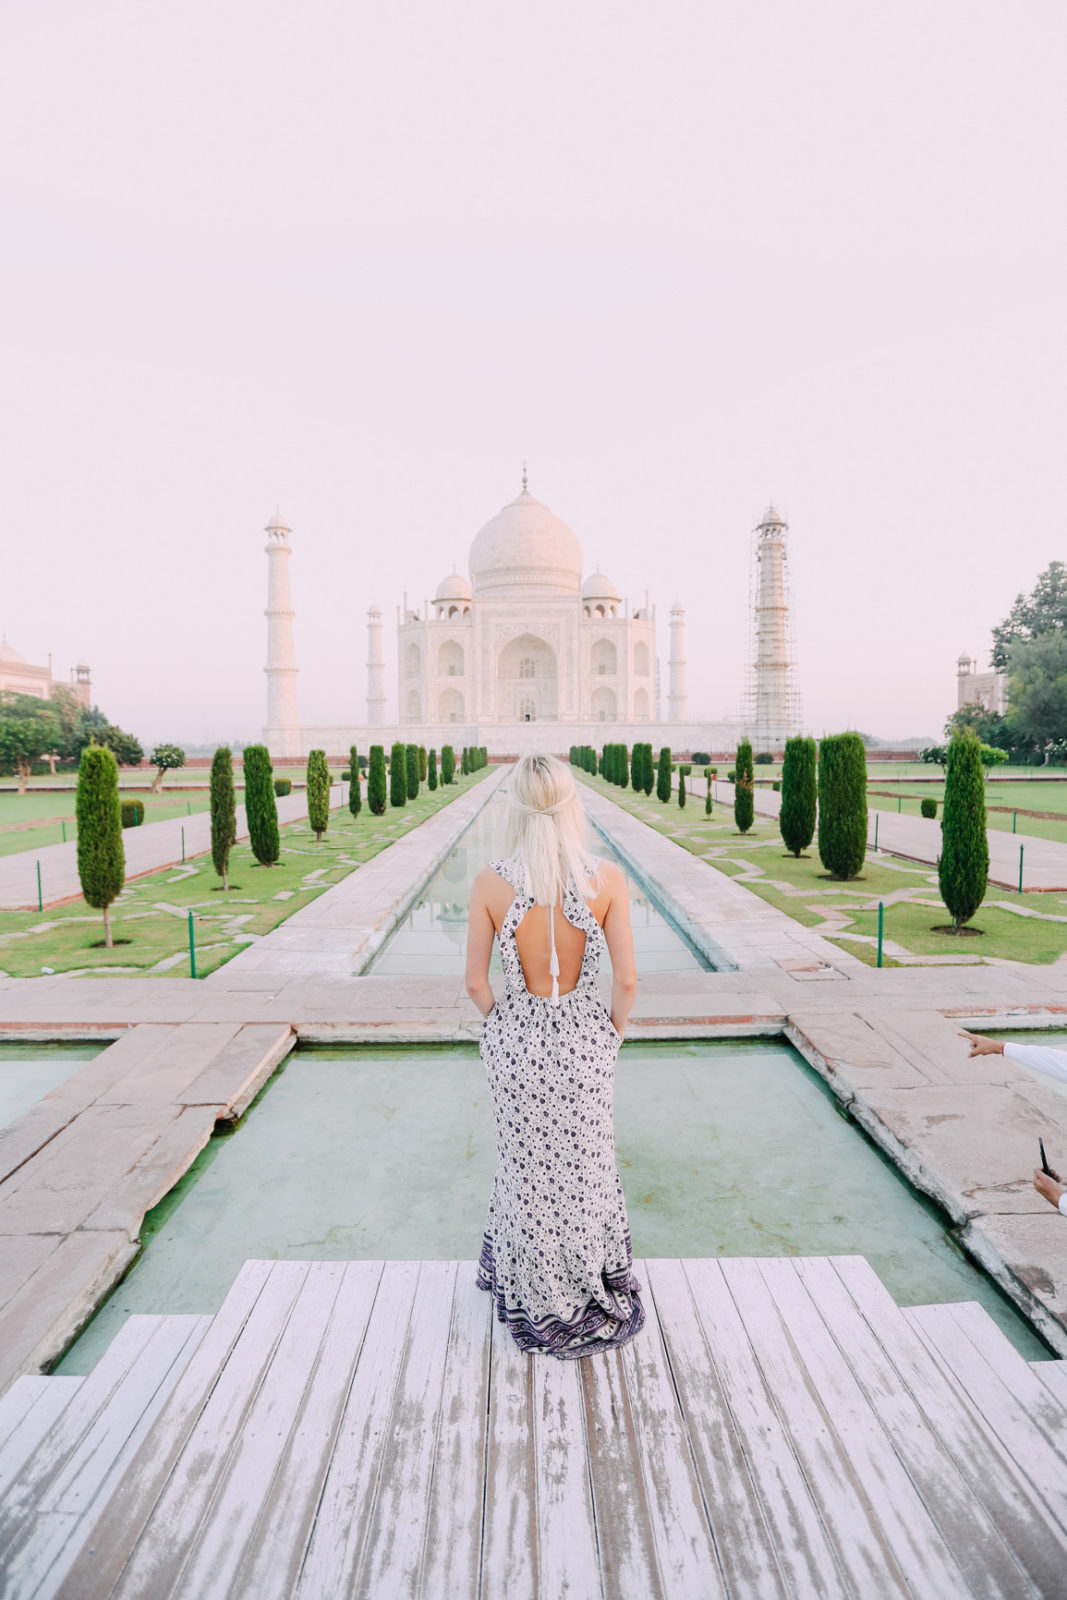 We Went to India!